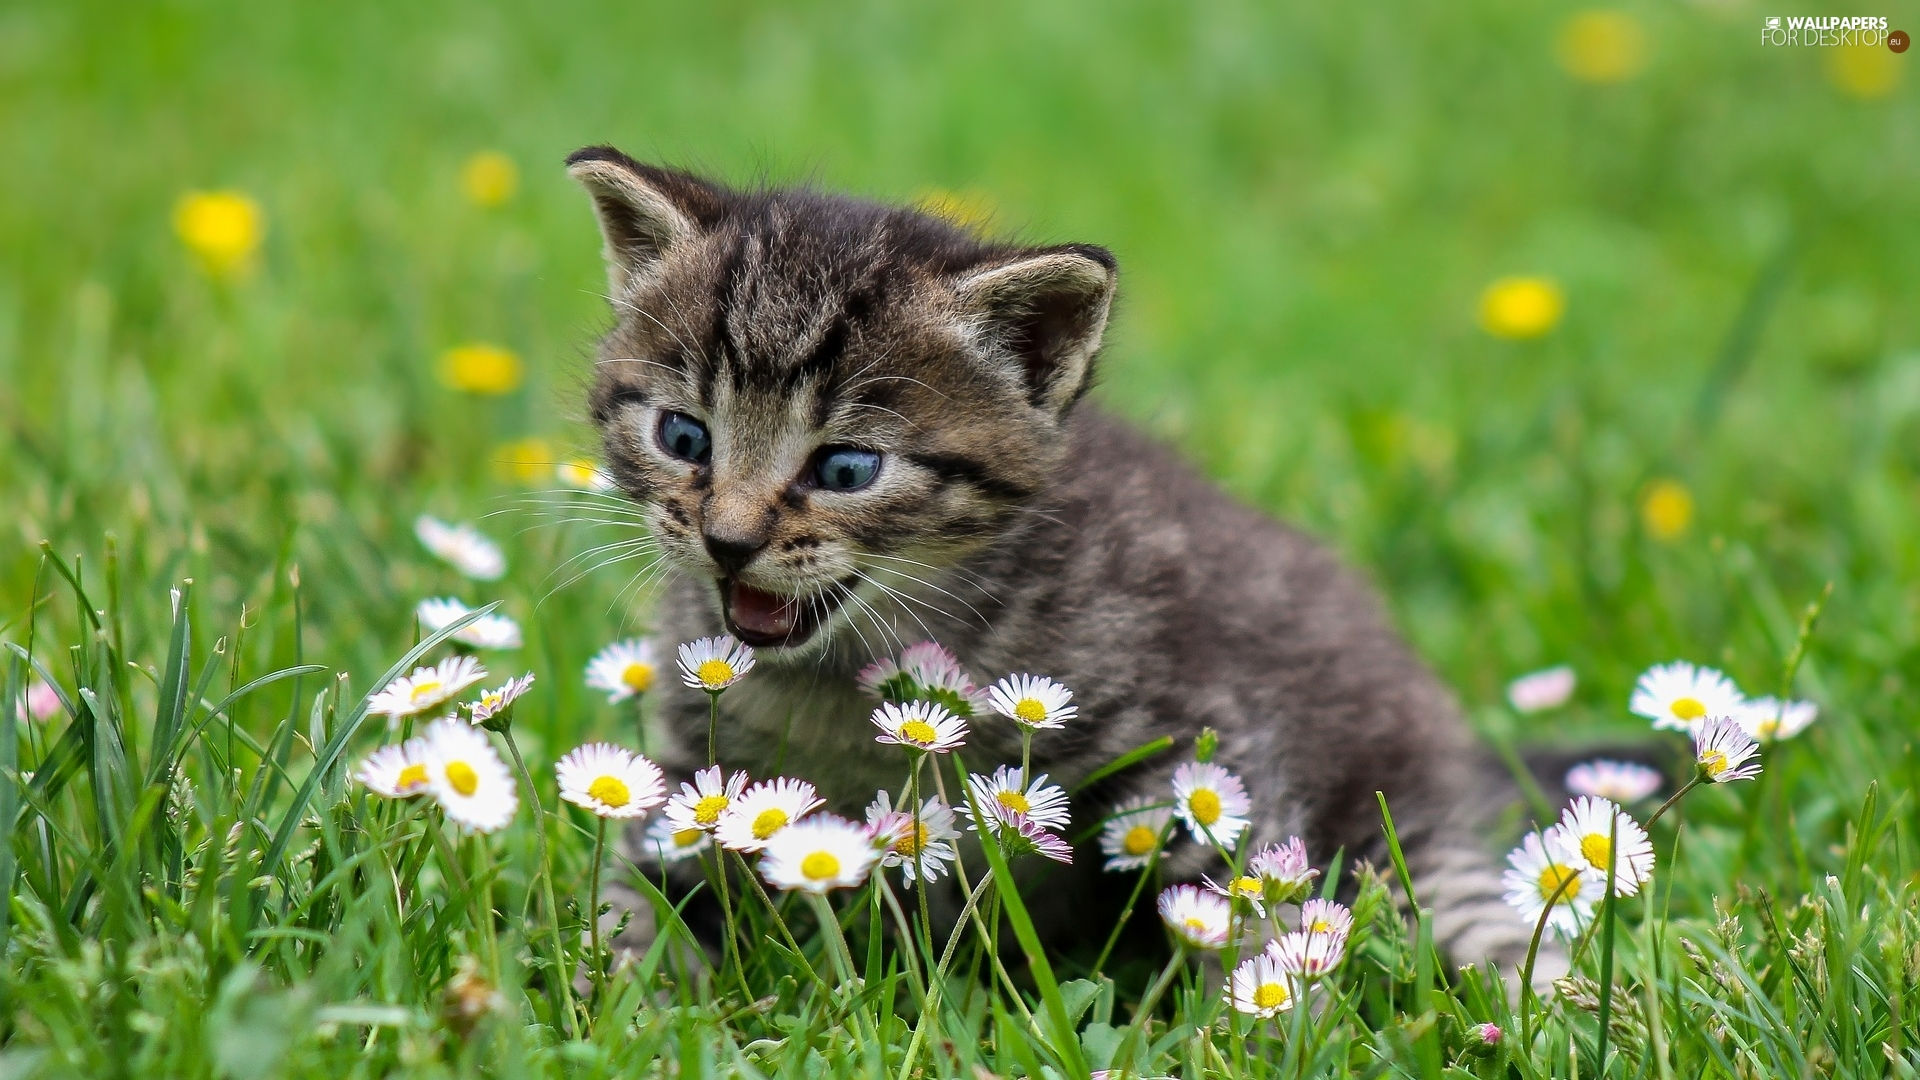 small, kitten, daisies, dun